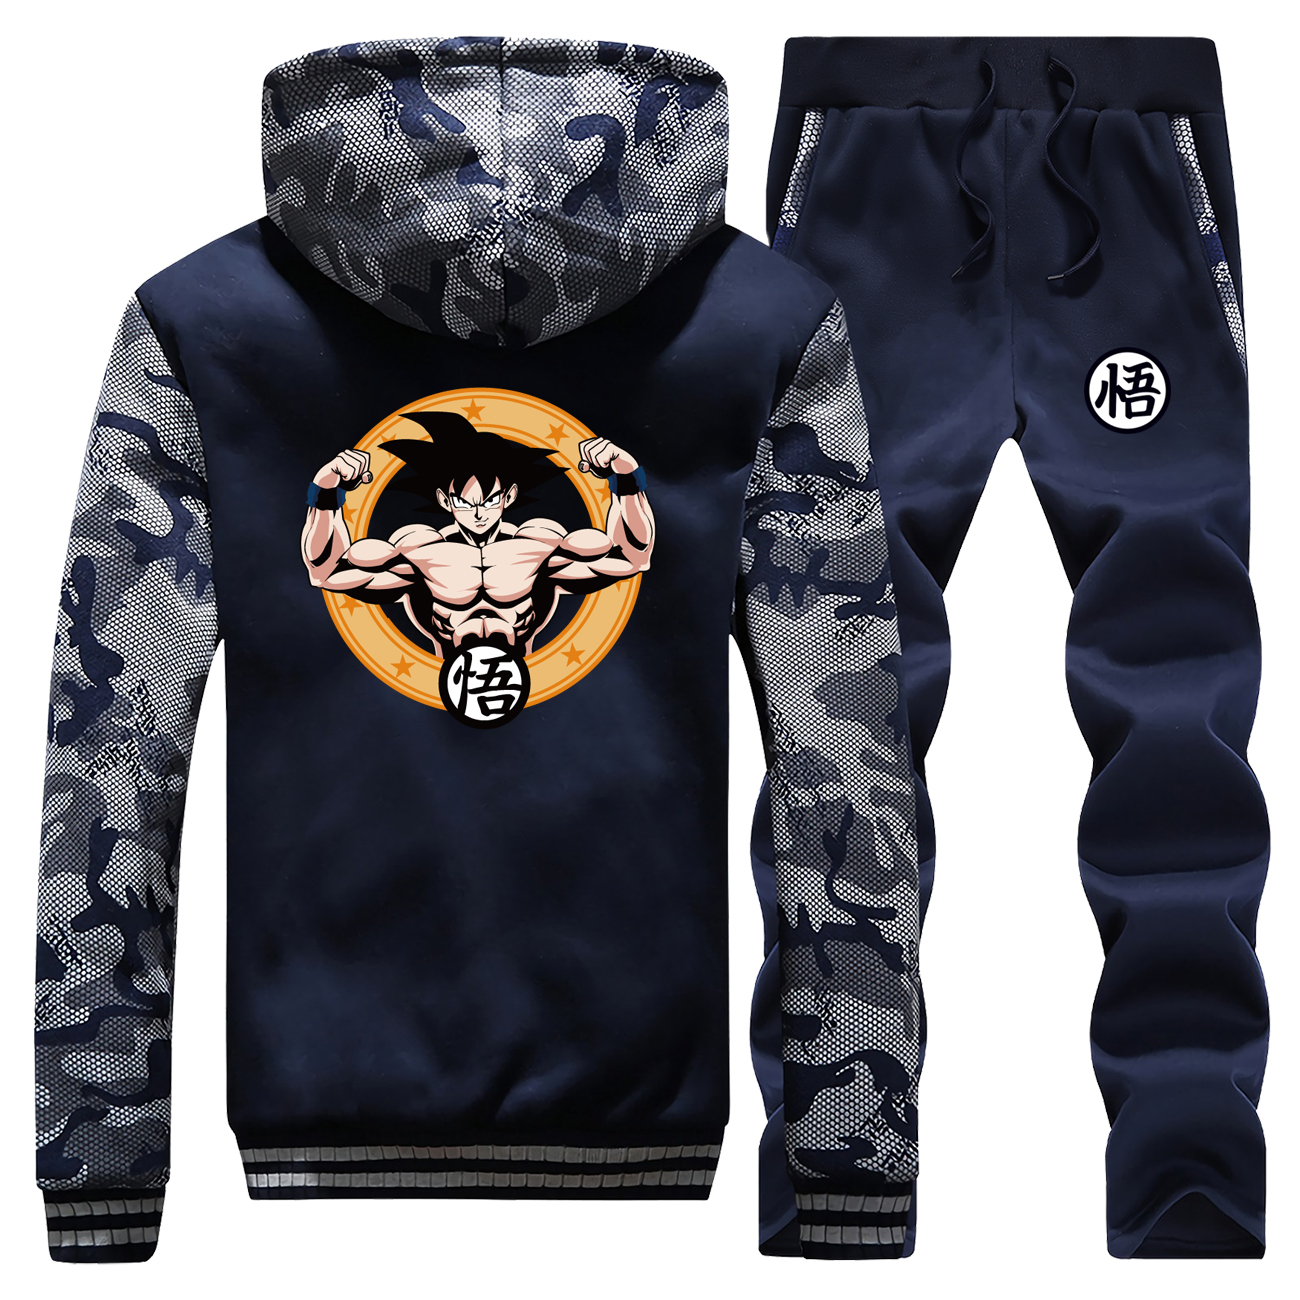 Japan Anime Dragon Ball Z Print Zipper Jackets Fashion Sweatsuit Fitness Gym Suit Winter Mens Sets Harajuku Thick Sportsman Wear